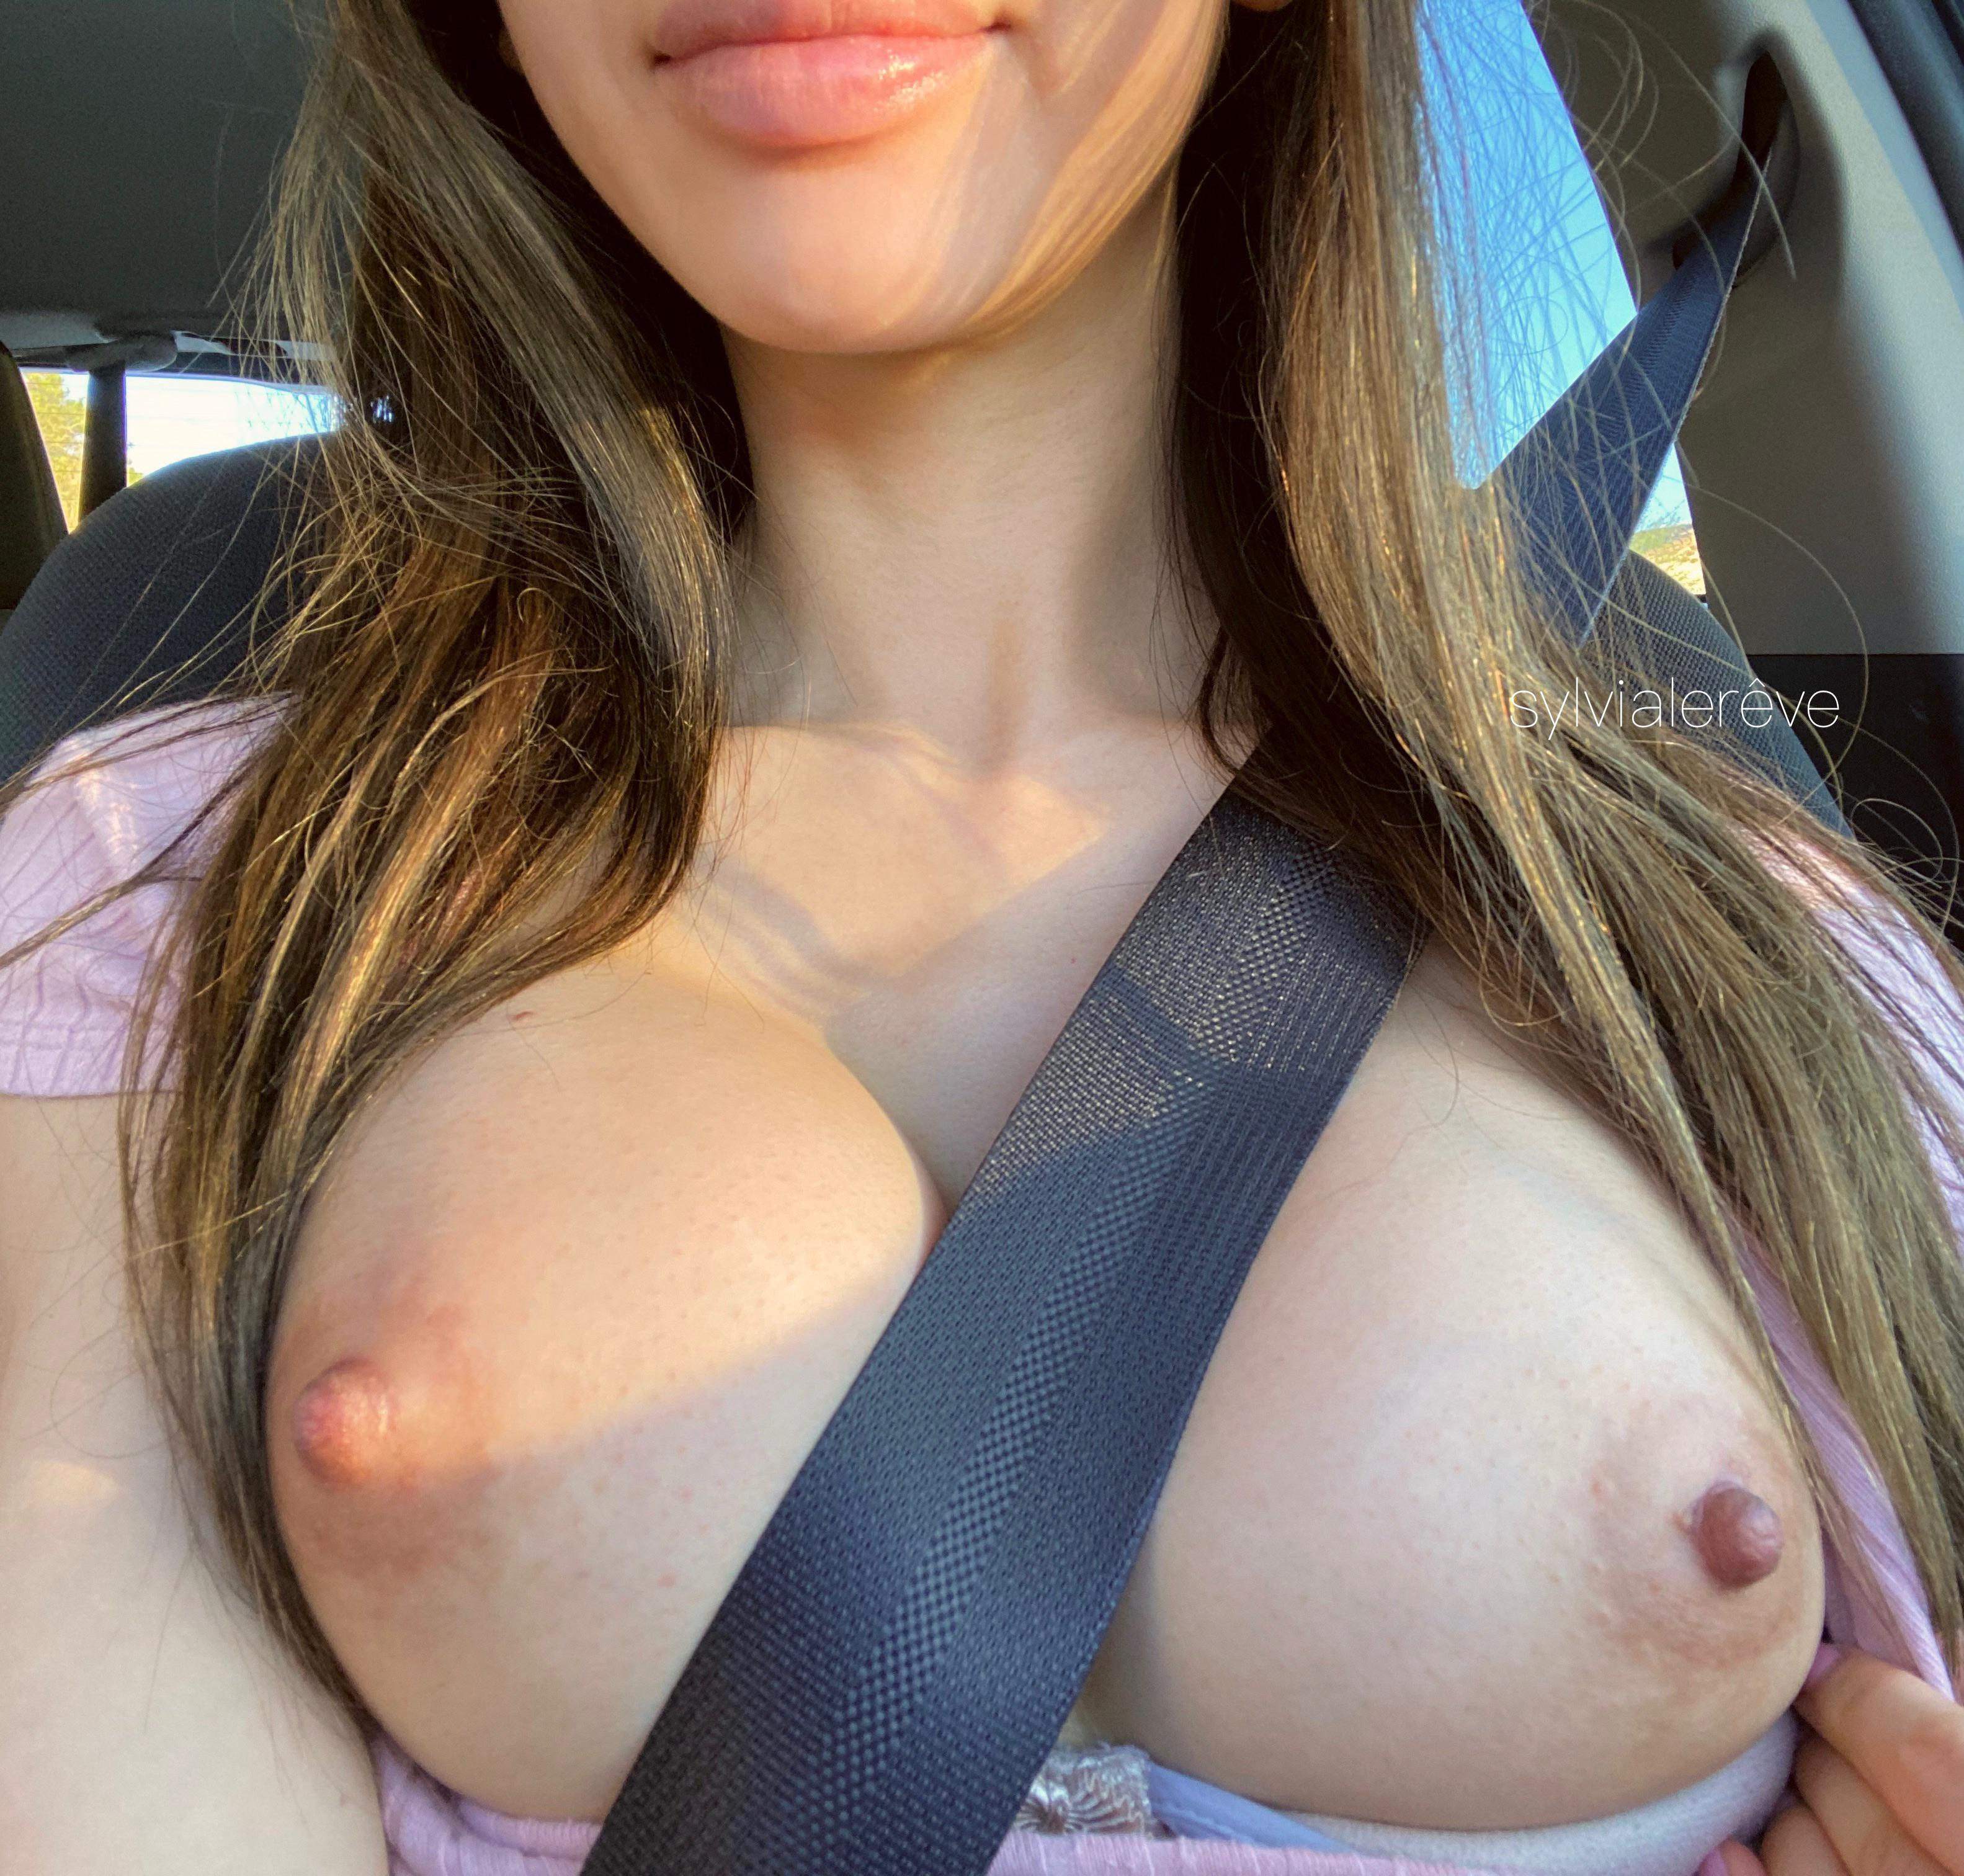 One of our naked asian pics called I hope the cars around me saw my titties ;)